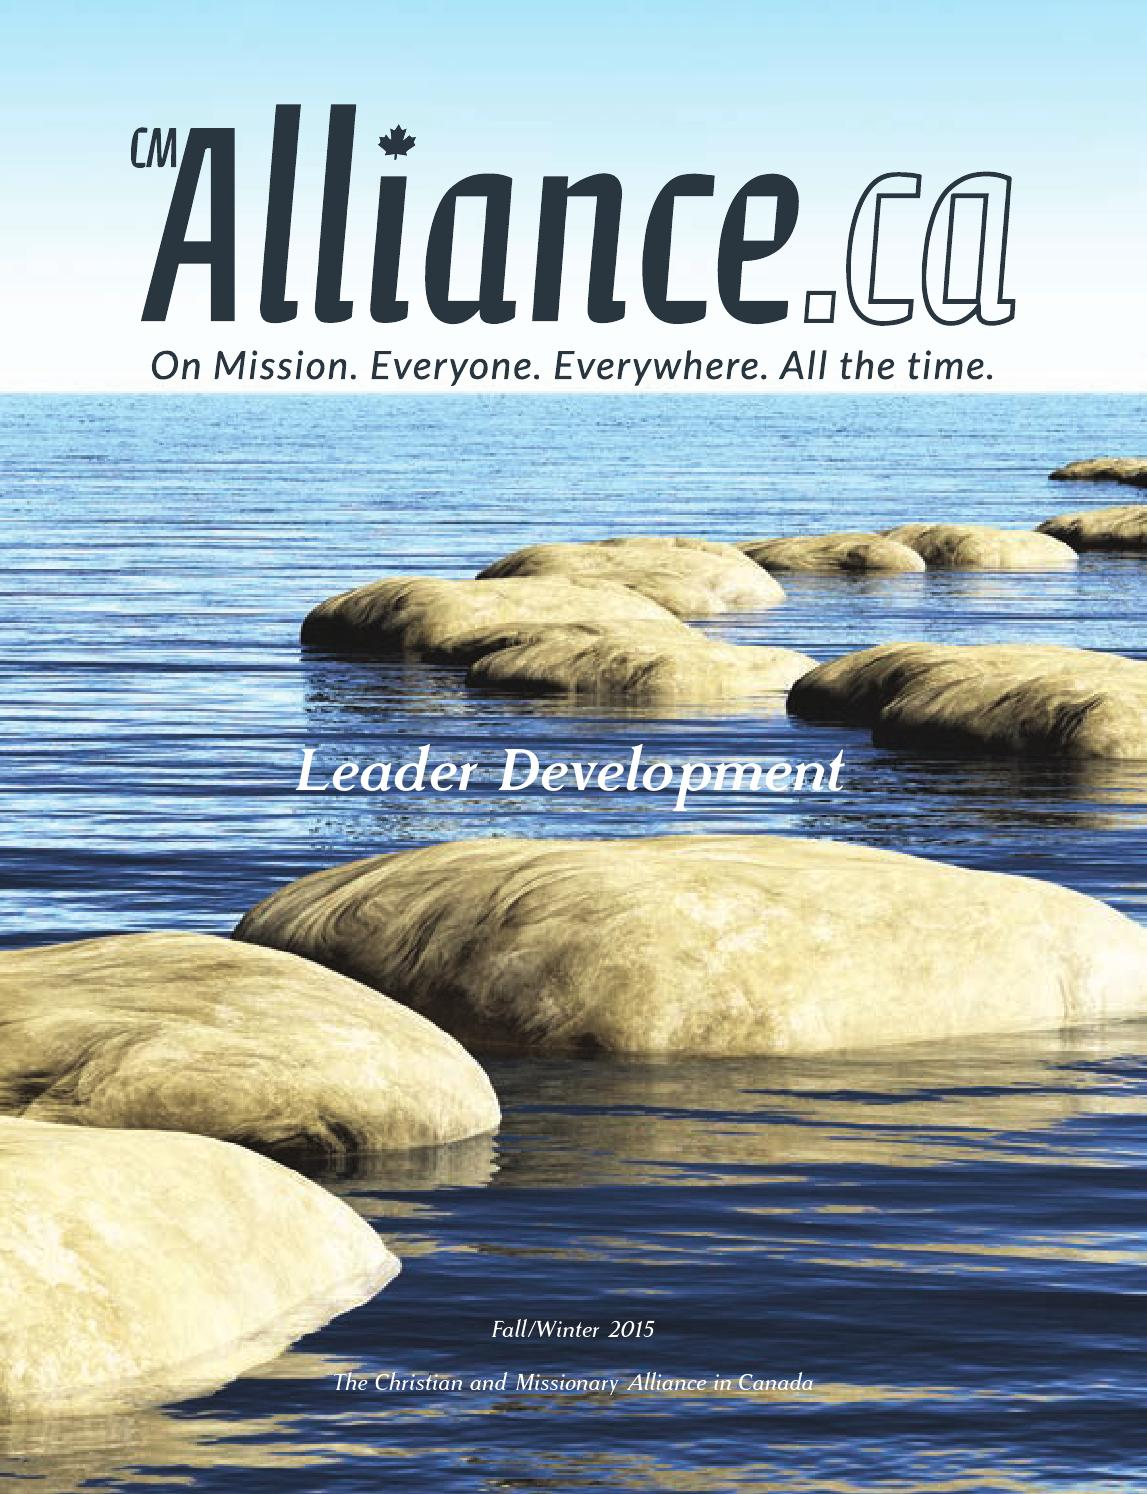 christian and missionary alliance canada manual